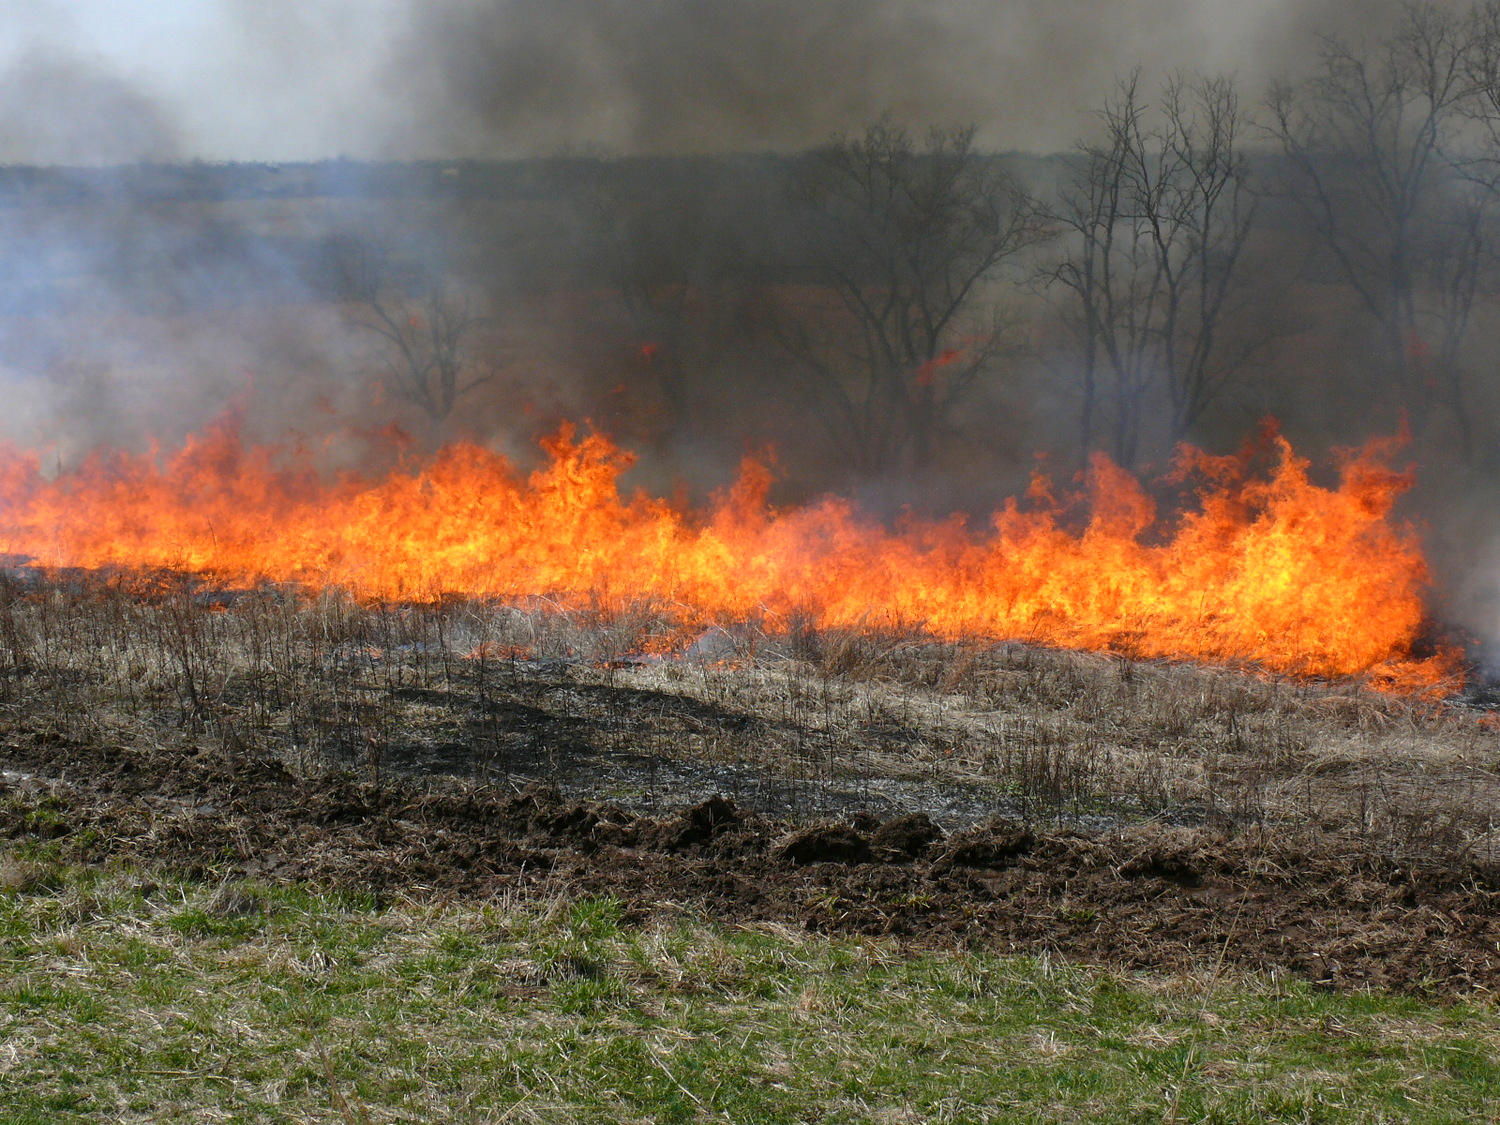 Controlled burn, a key component of native warm season grass restorations, at Shaker Village in Harrodsburg, KY.